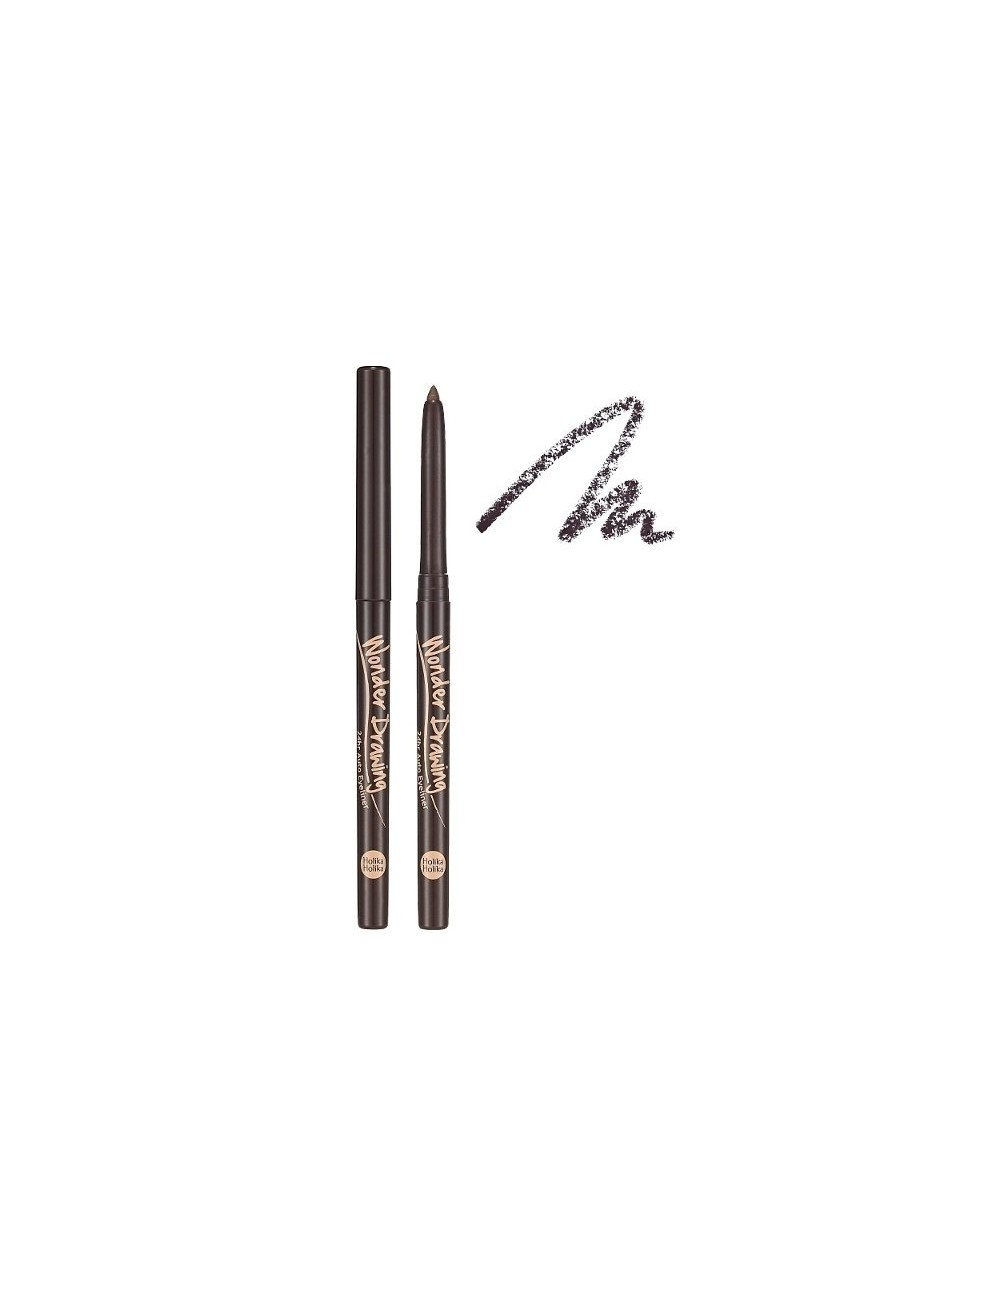 Holika Holika Lápiz de Ojos Marrón Wonder Drawing 24hr Auto Eyeliner 02 Brown